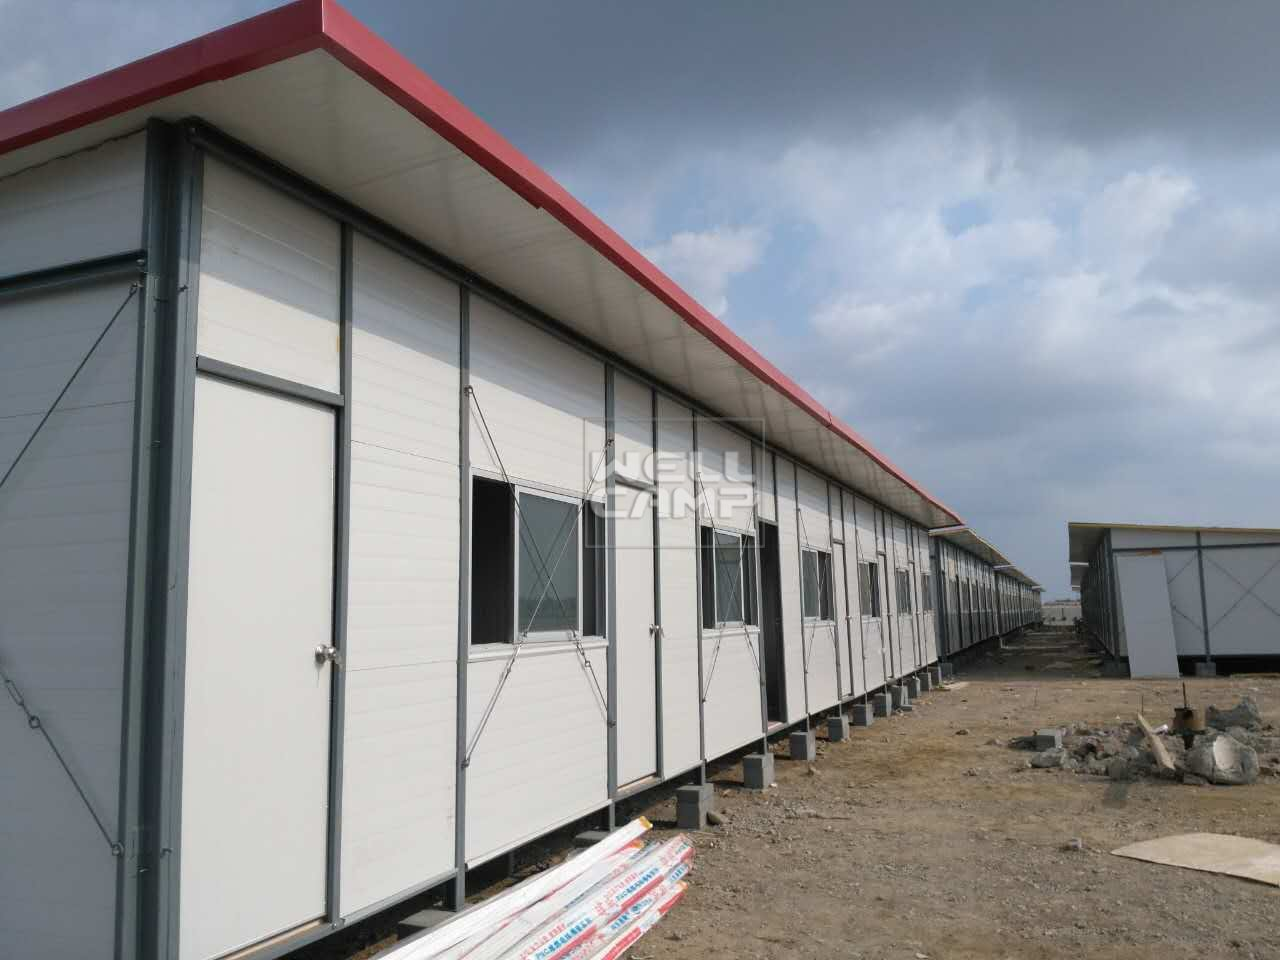 Wellcamp fireproof prefab homes for accommodation in Saudi Arabia